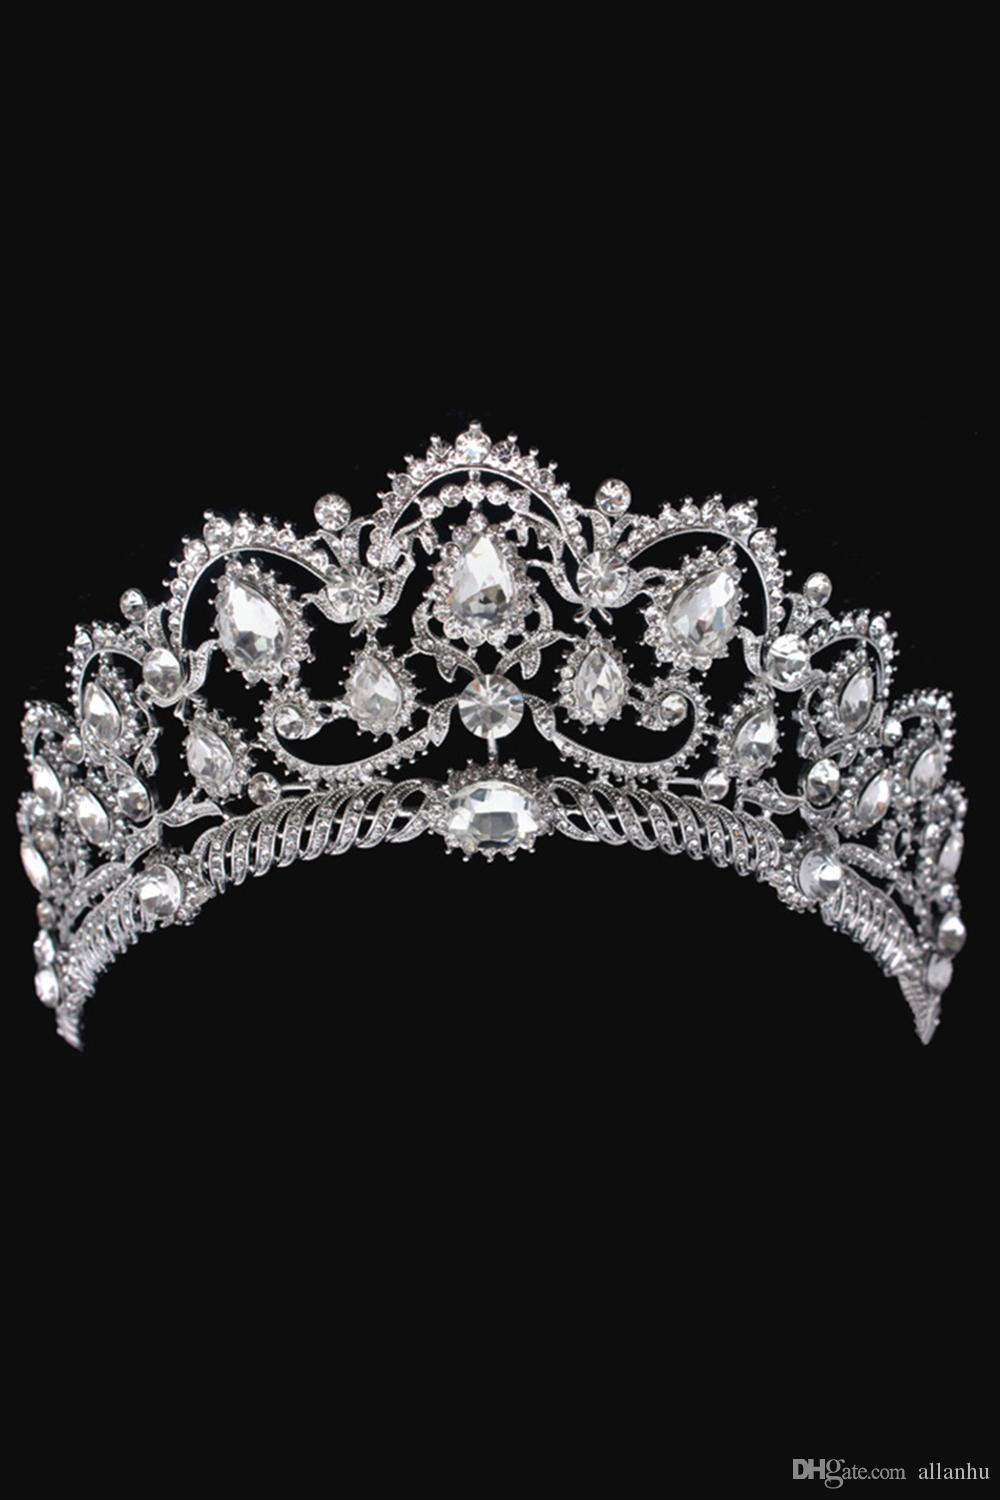 Sparkle Beaded Crystals Wedding Crowns 2017 For Bride Bridal Crystal Veil Tiara Crown Headband Hair Accessories Party Wedding Tiara CPA792